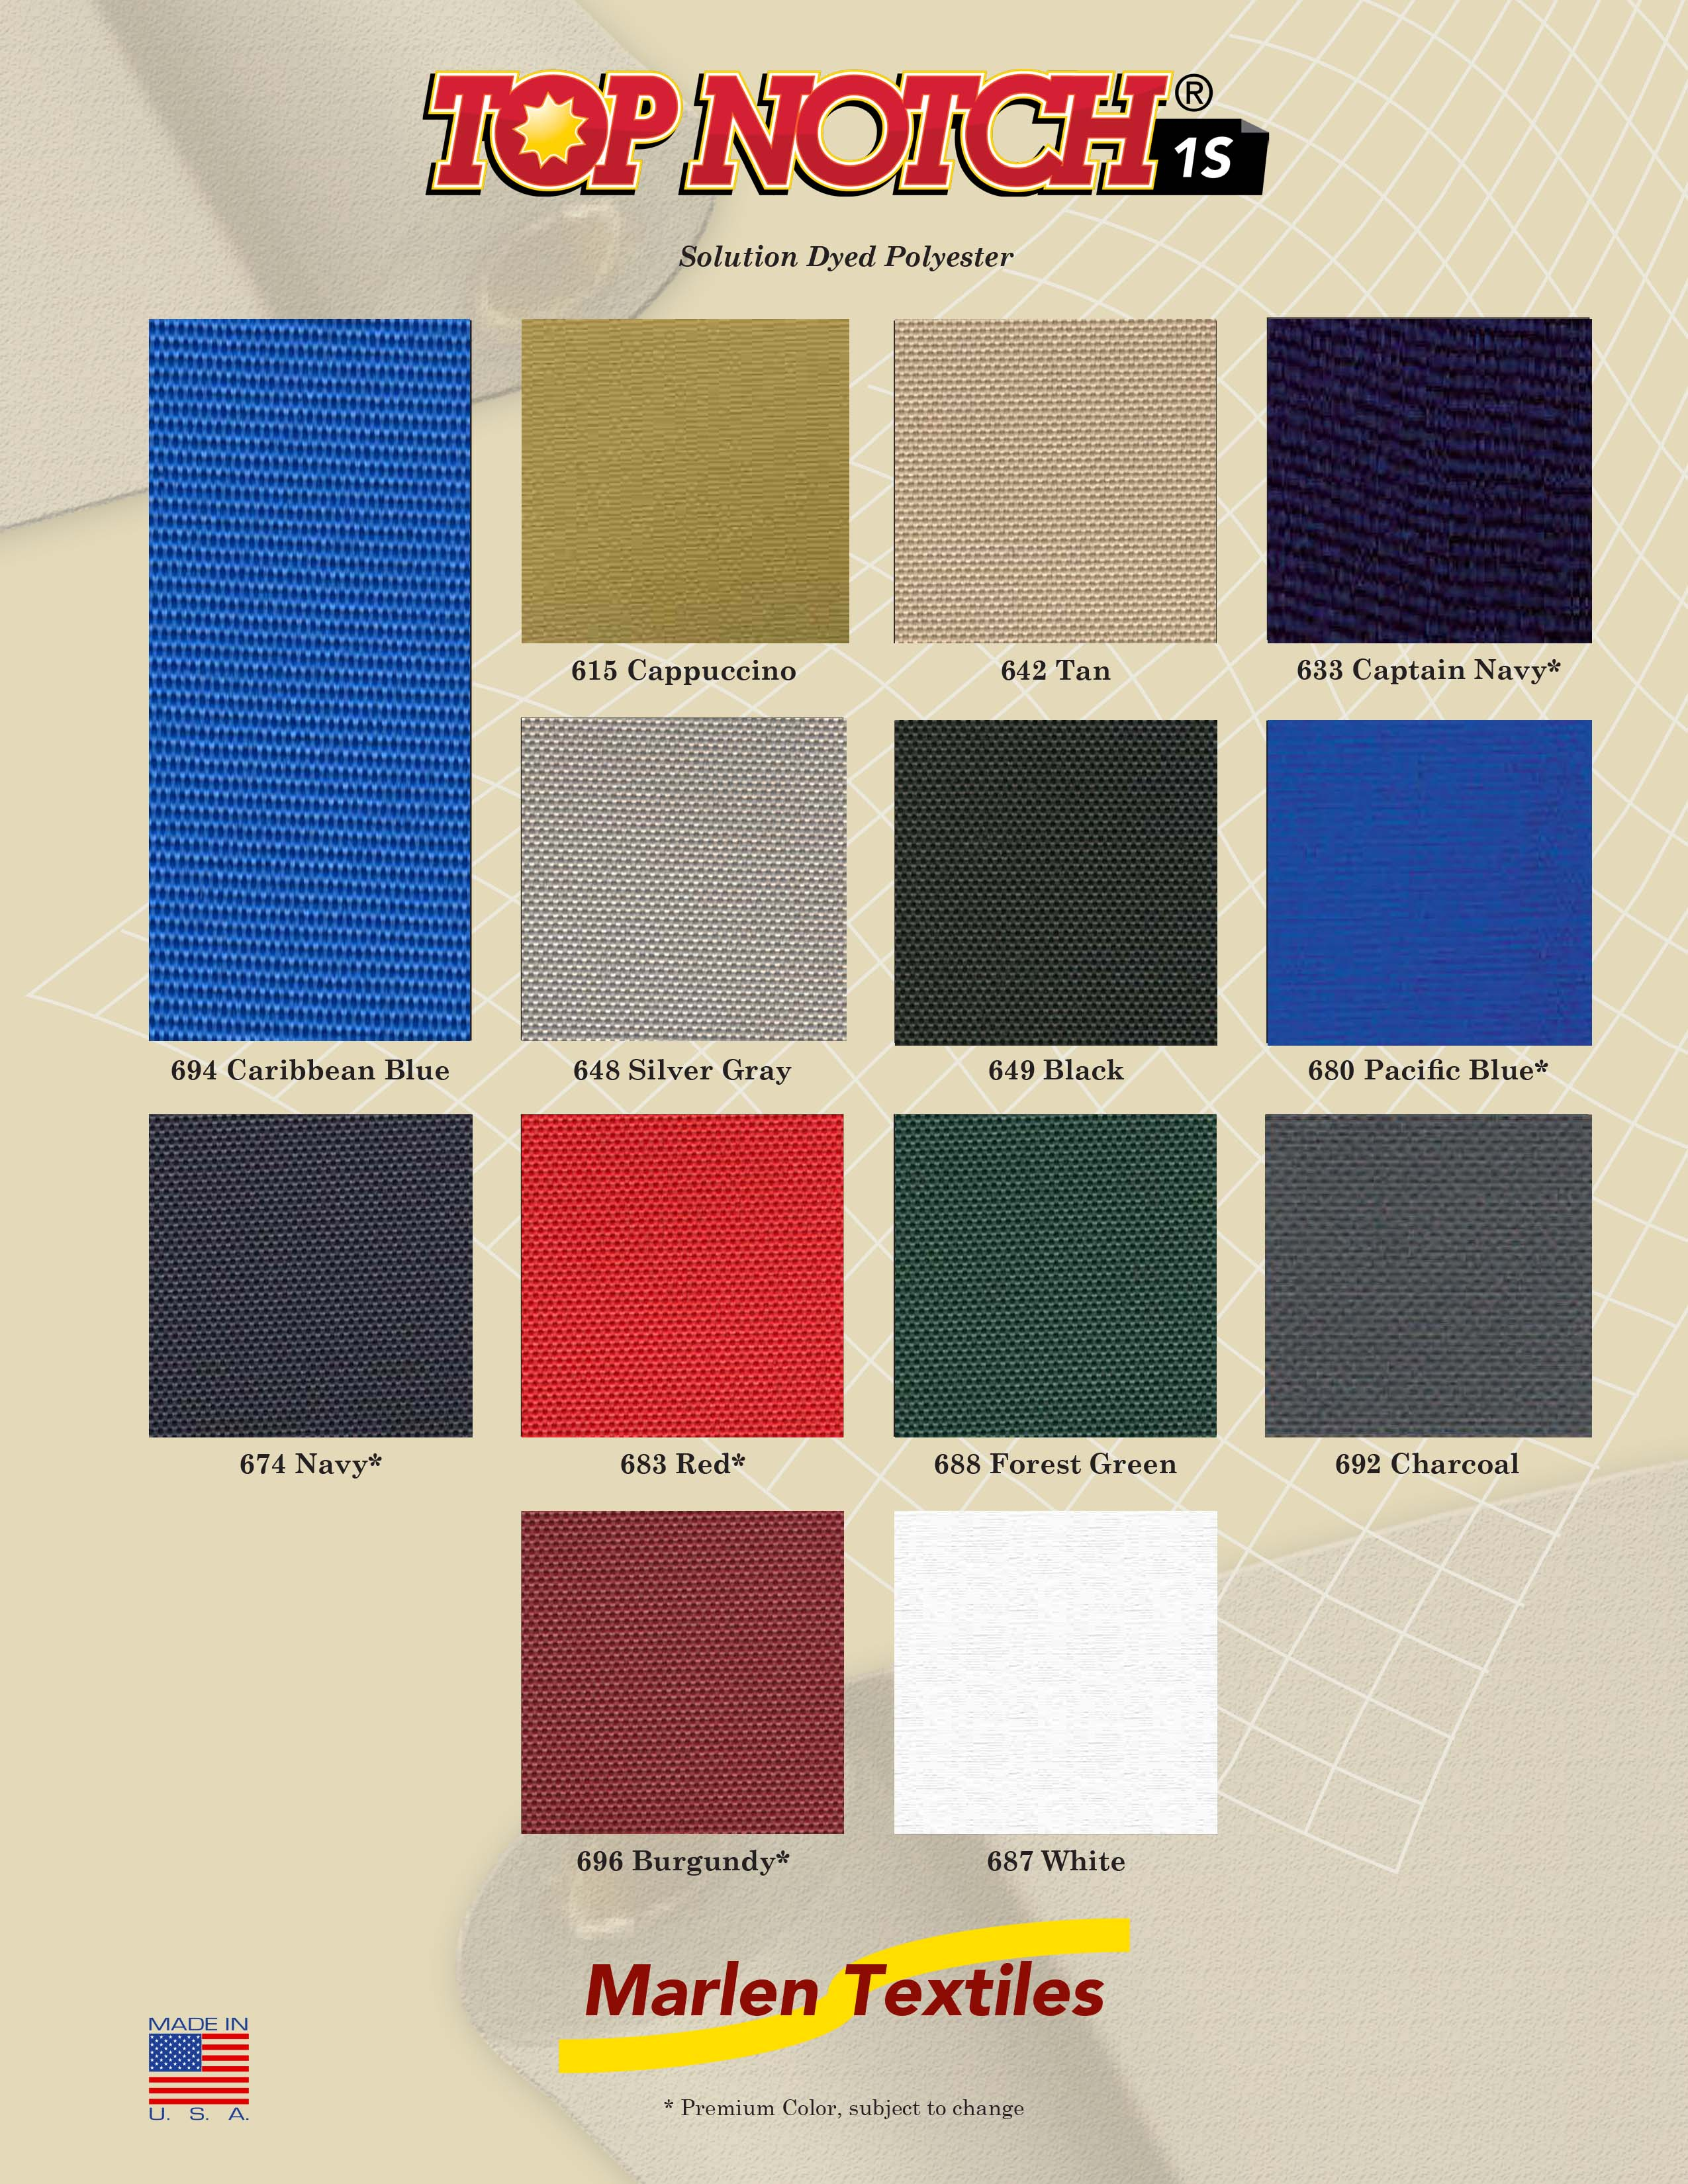 Marlen Textiles Top Notch 1s Solution Dyed Polyester Fabric Colors For Boat Covers Awnings Canopies More